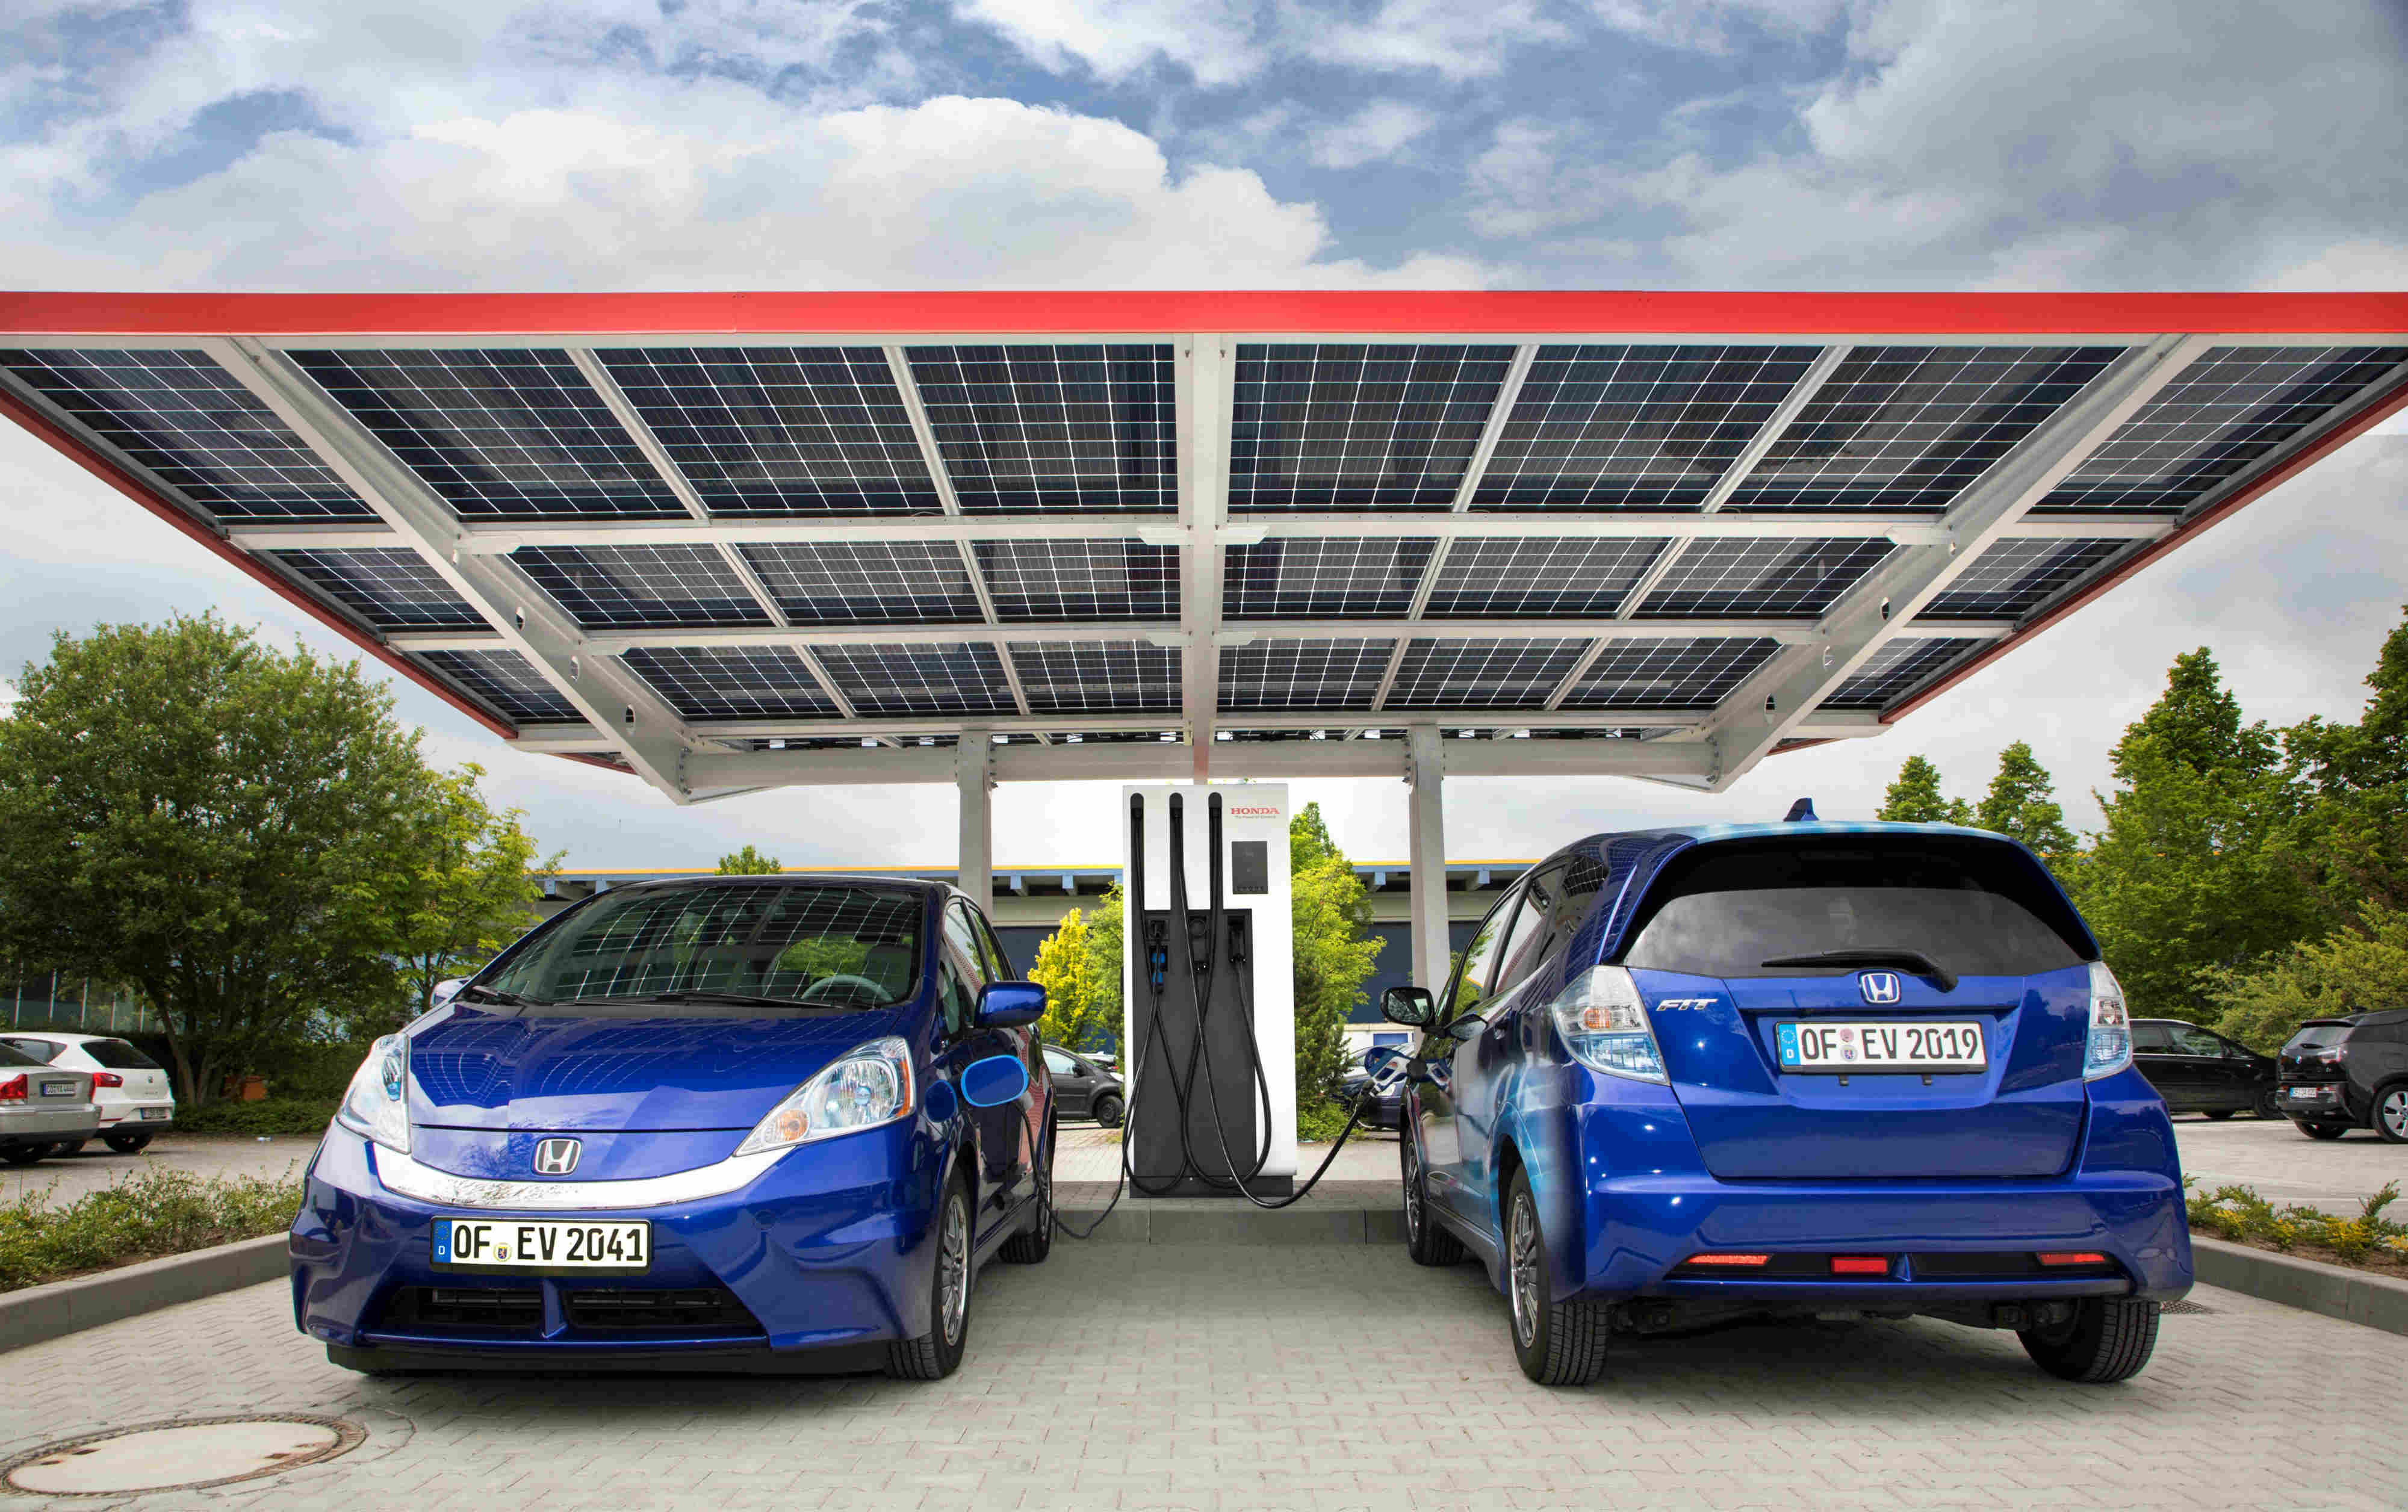 Europe S Most Advanced Public Charging Station For